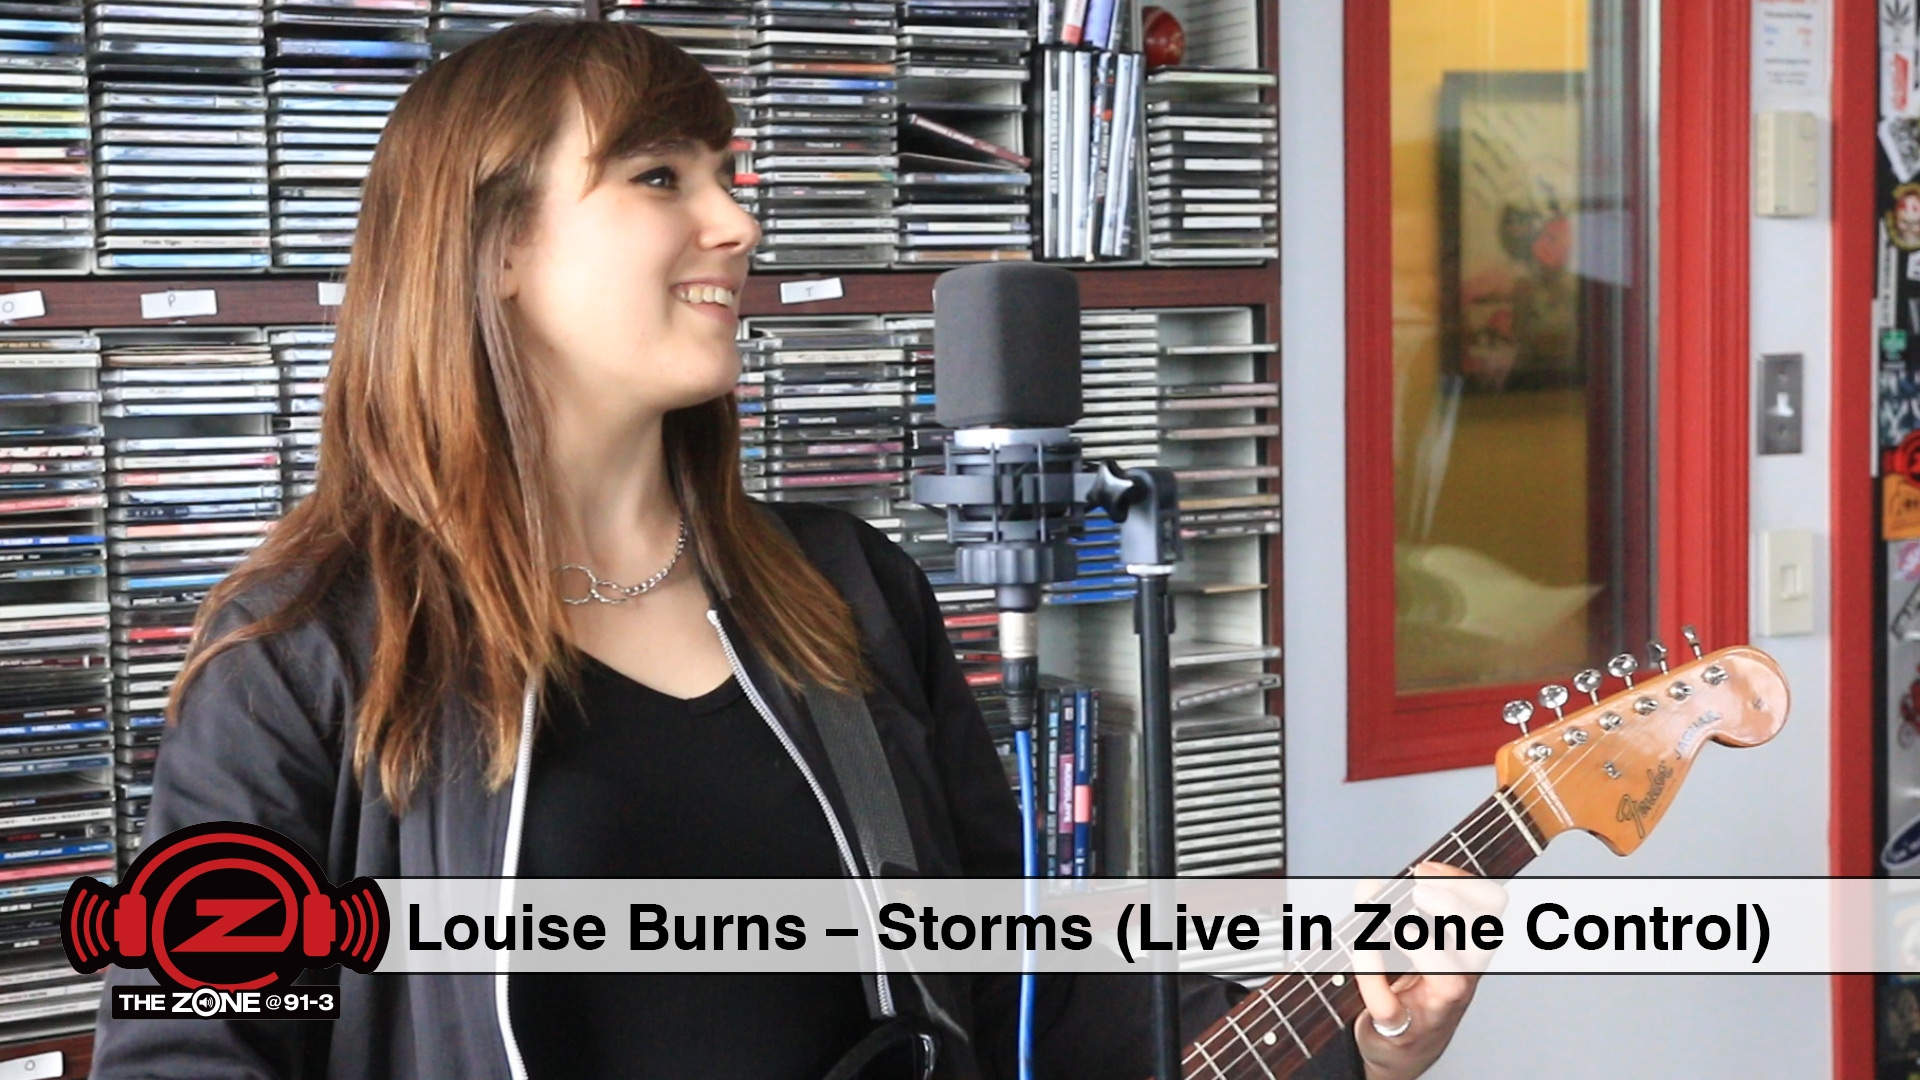 Louise Burns - Storms (Live in Zone Control)